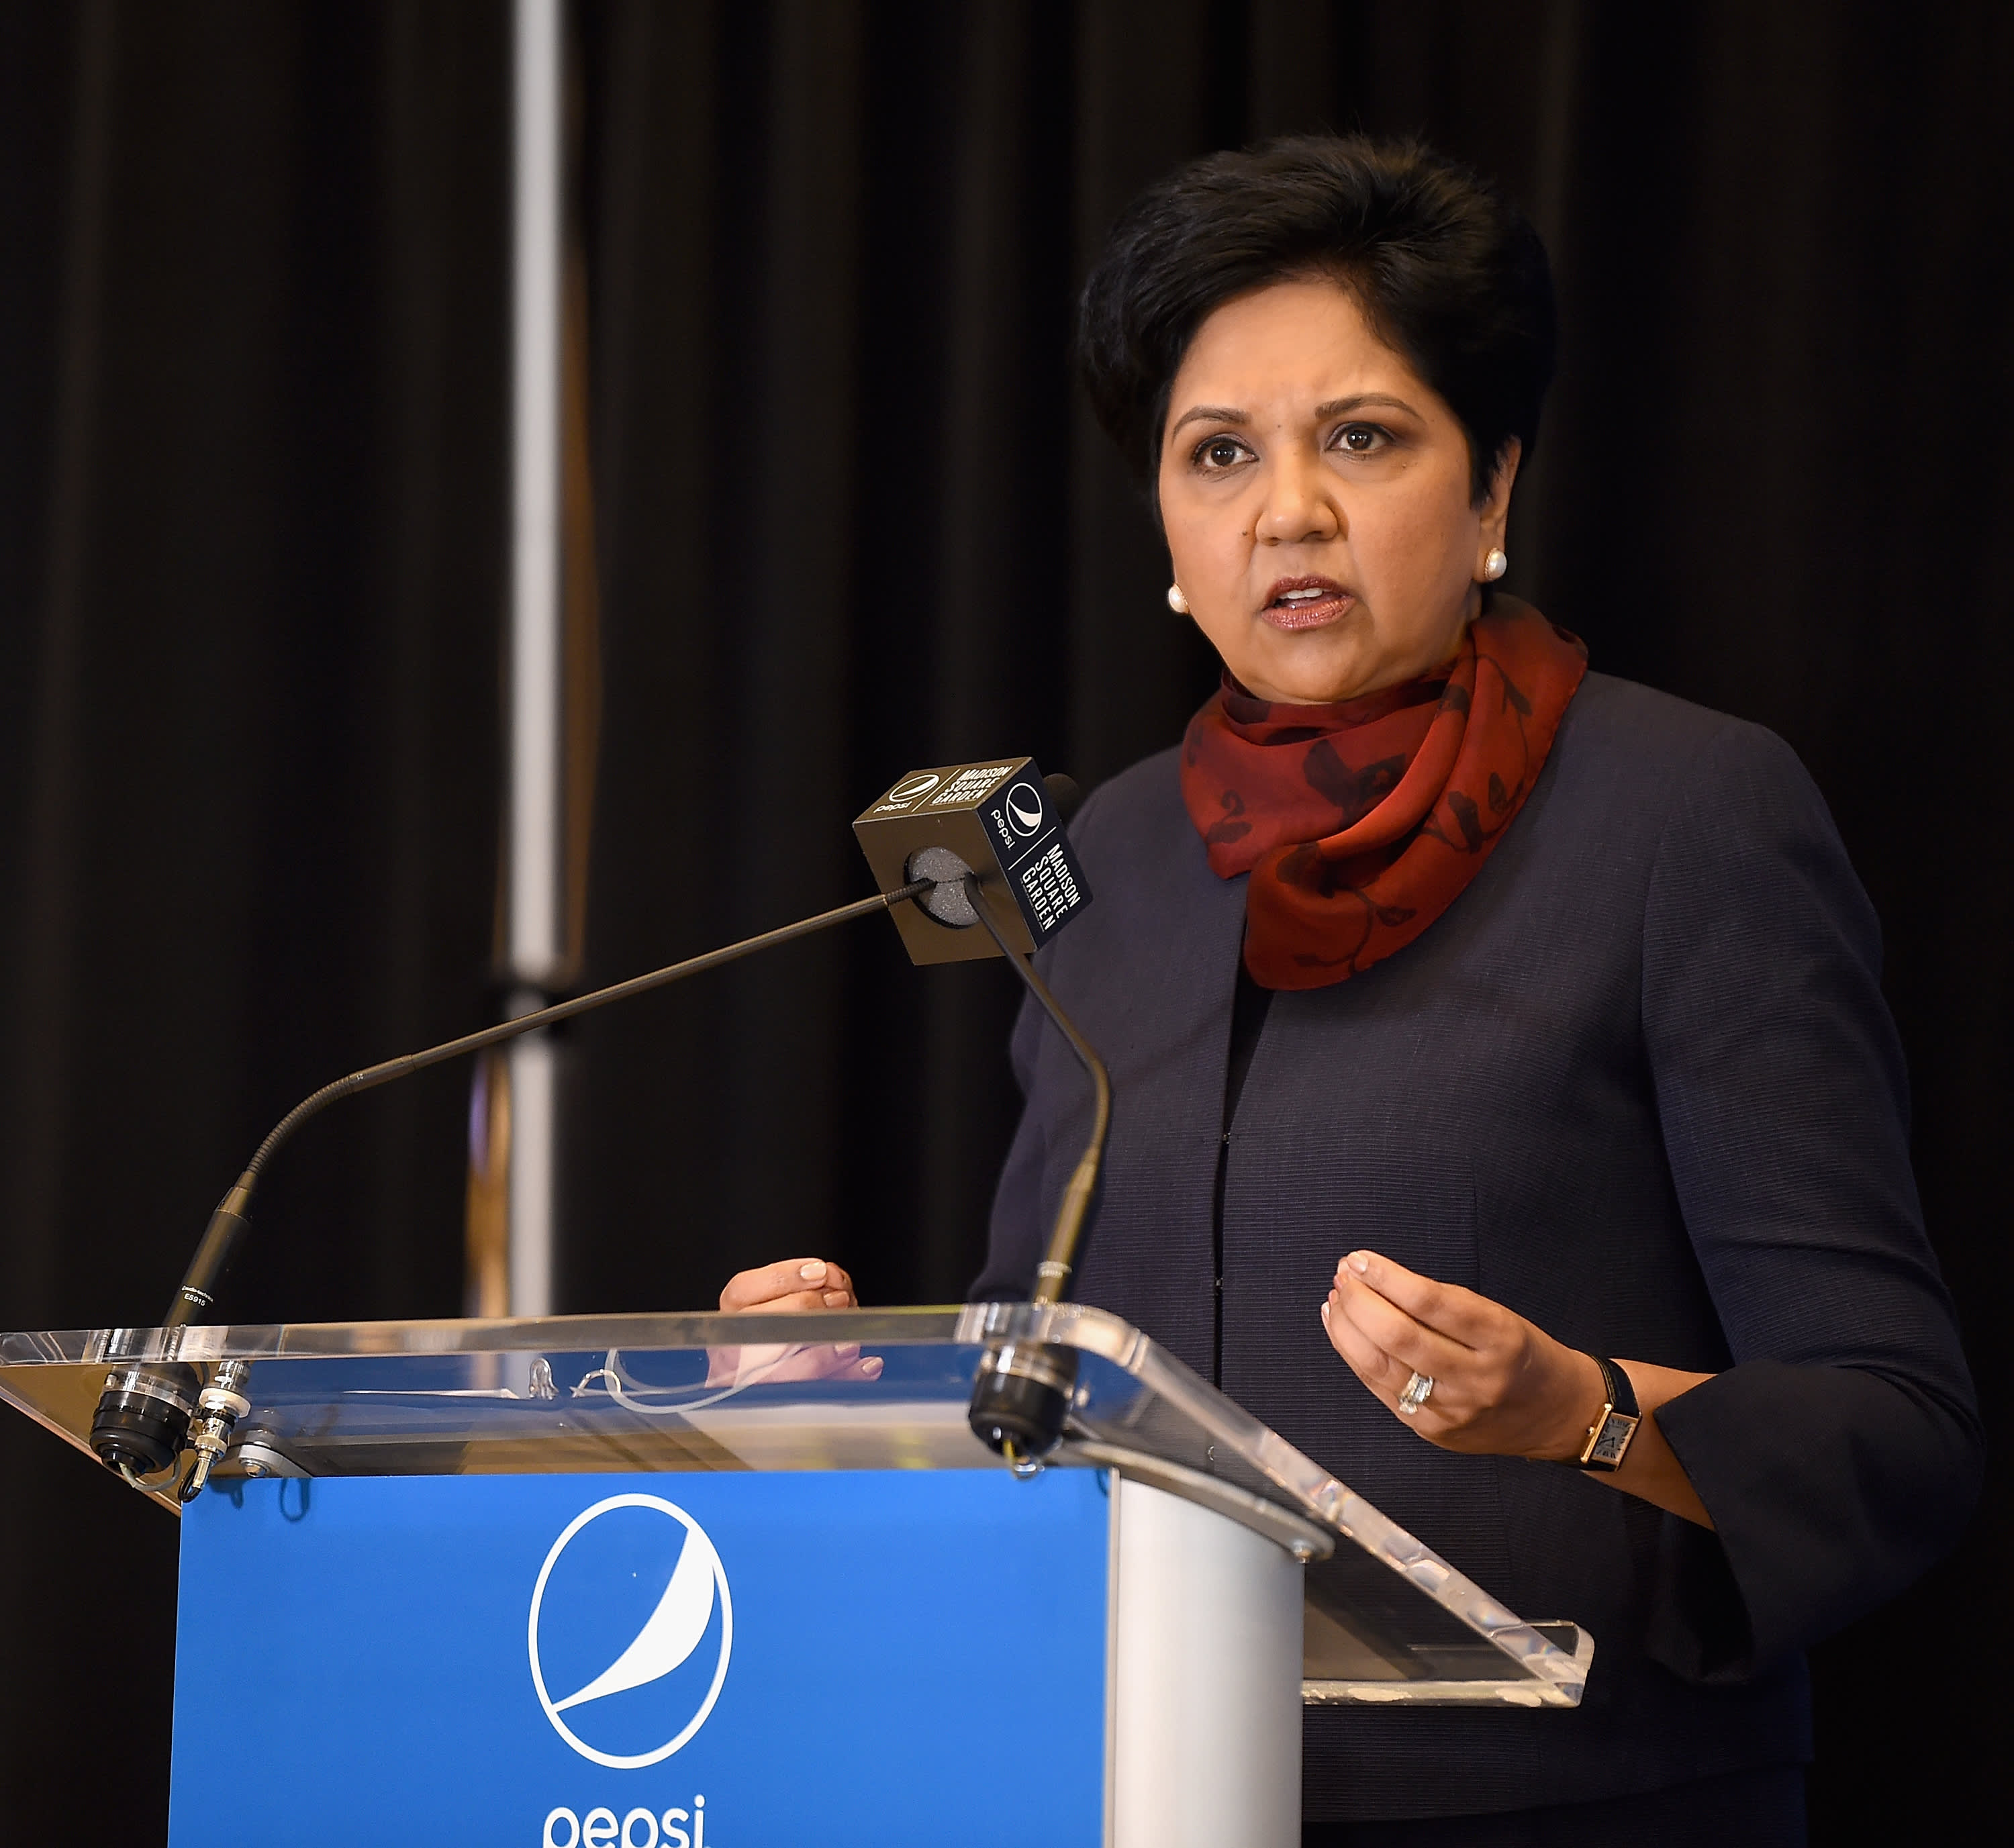 Indra Nooyi shared a work regret on her last day as PepsiCo CEO 1cff0f4e8166